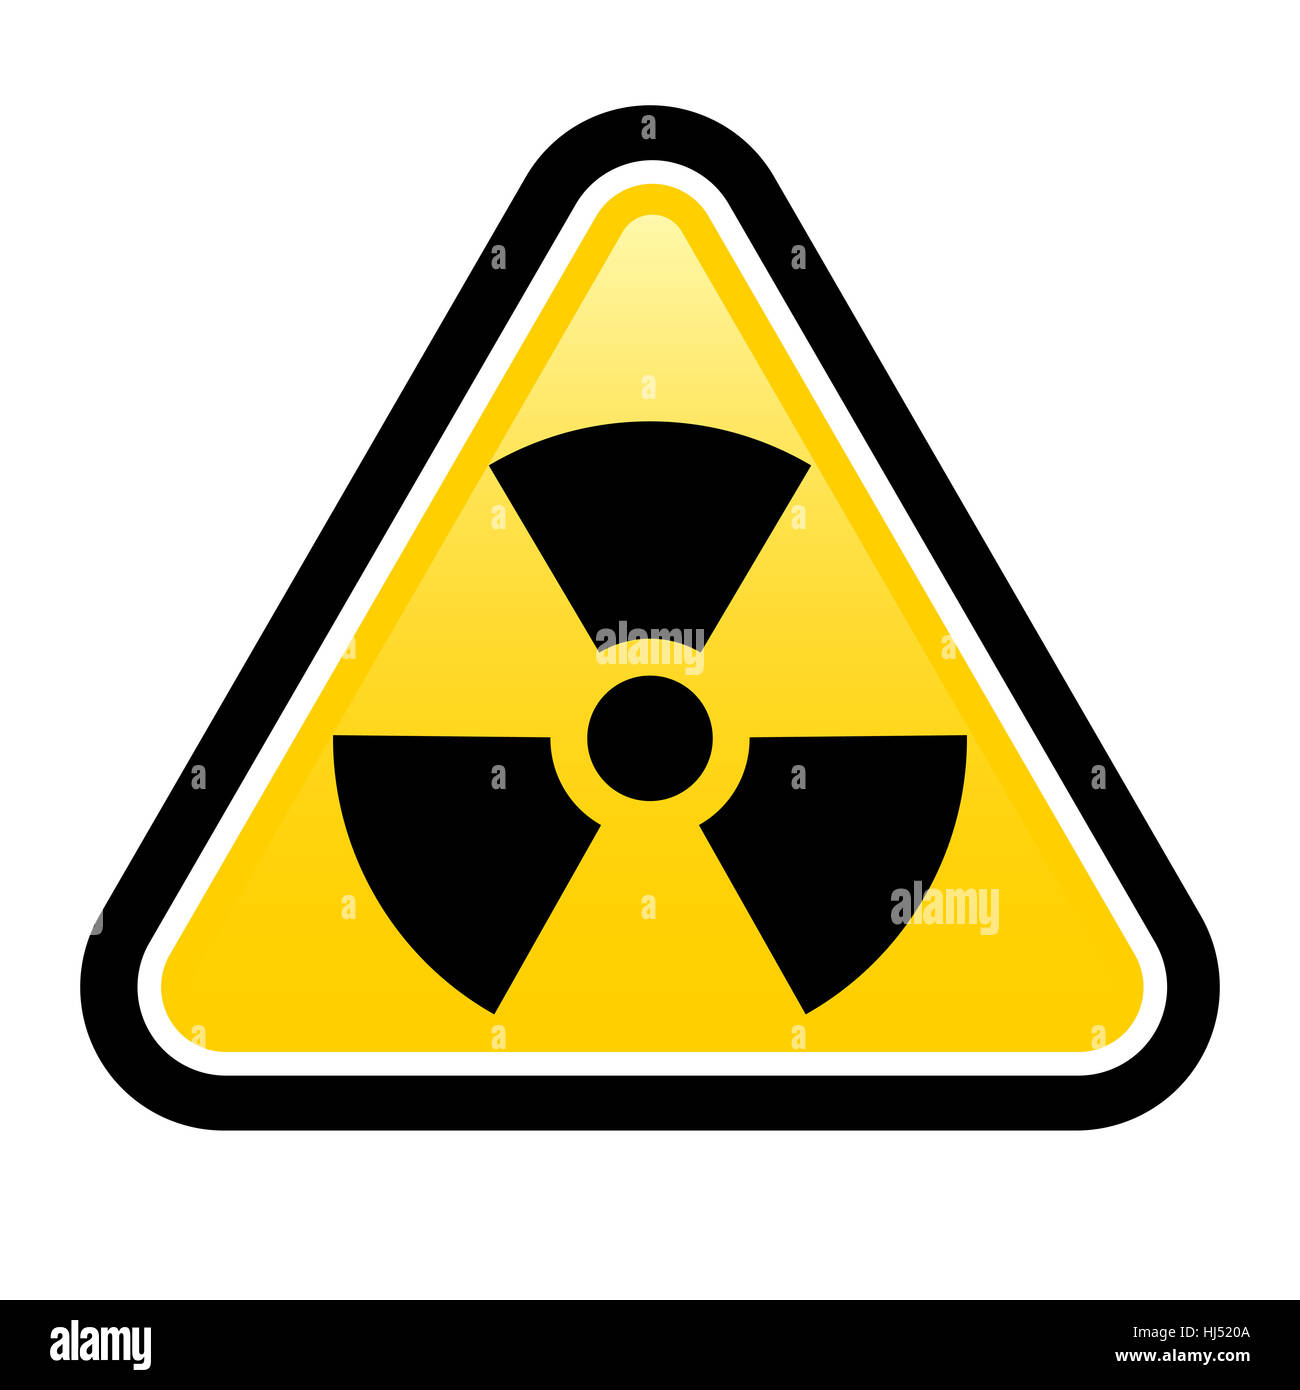 Yellow triangle sign with a radiation symbol on white glossy plane - Stock Image